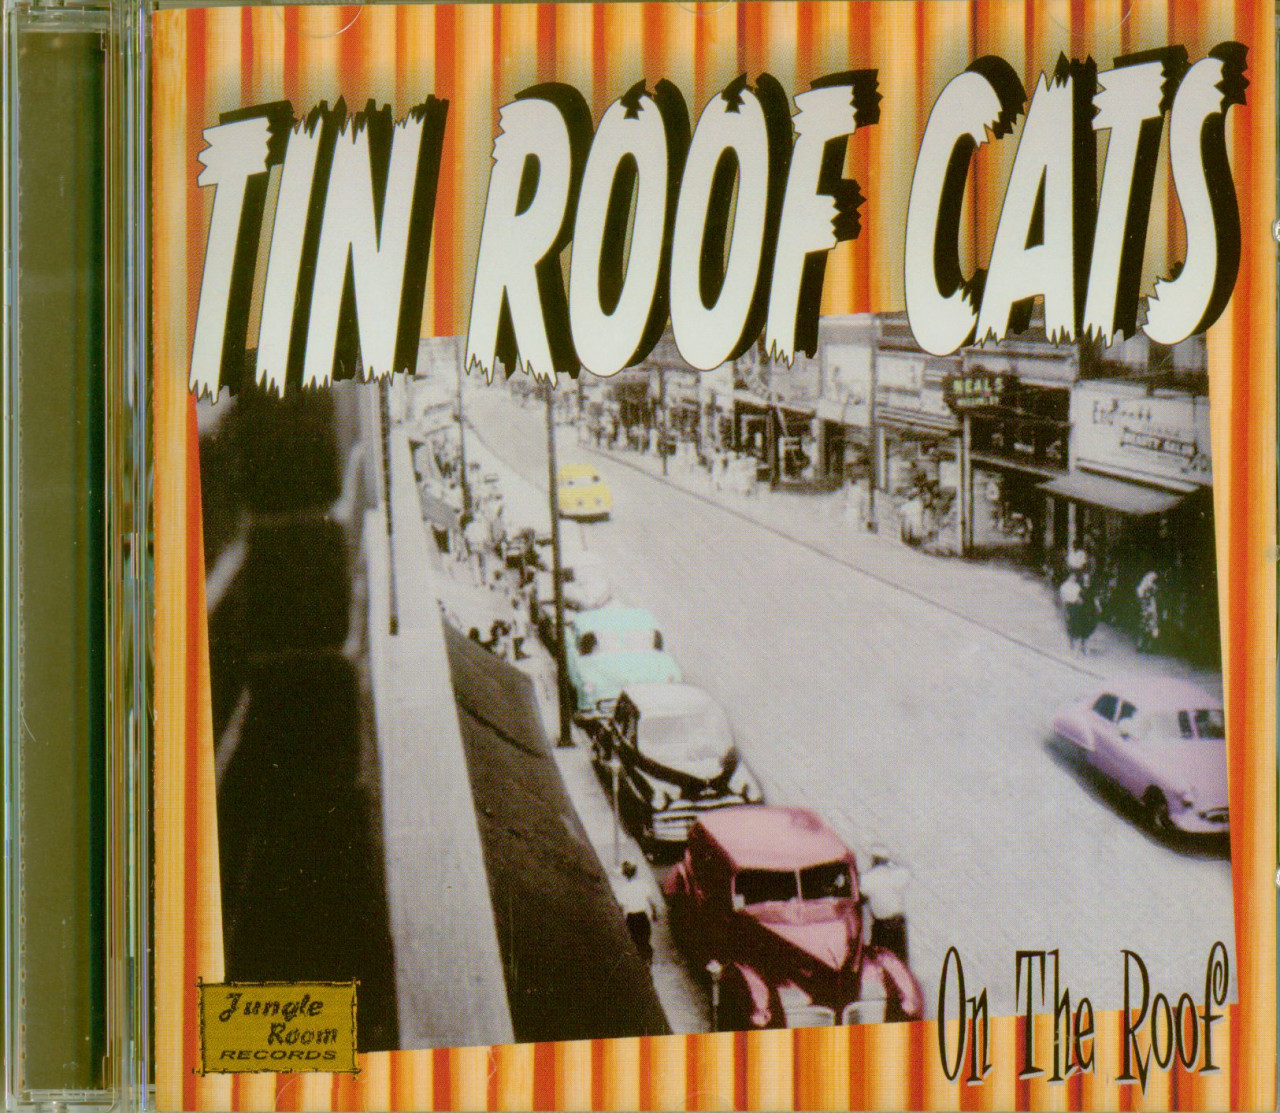 Tin Roof Cats - On The Roof (CD)